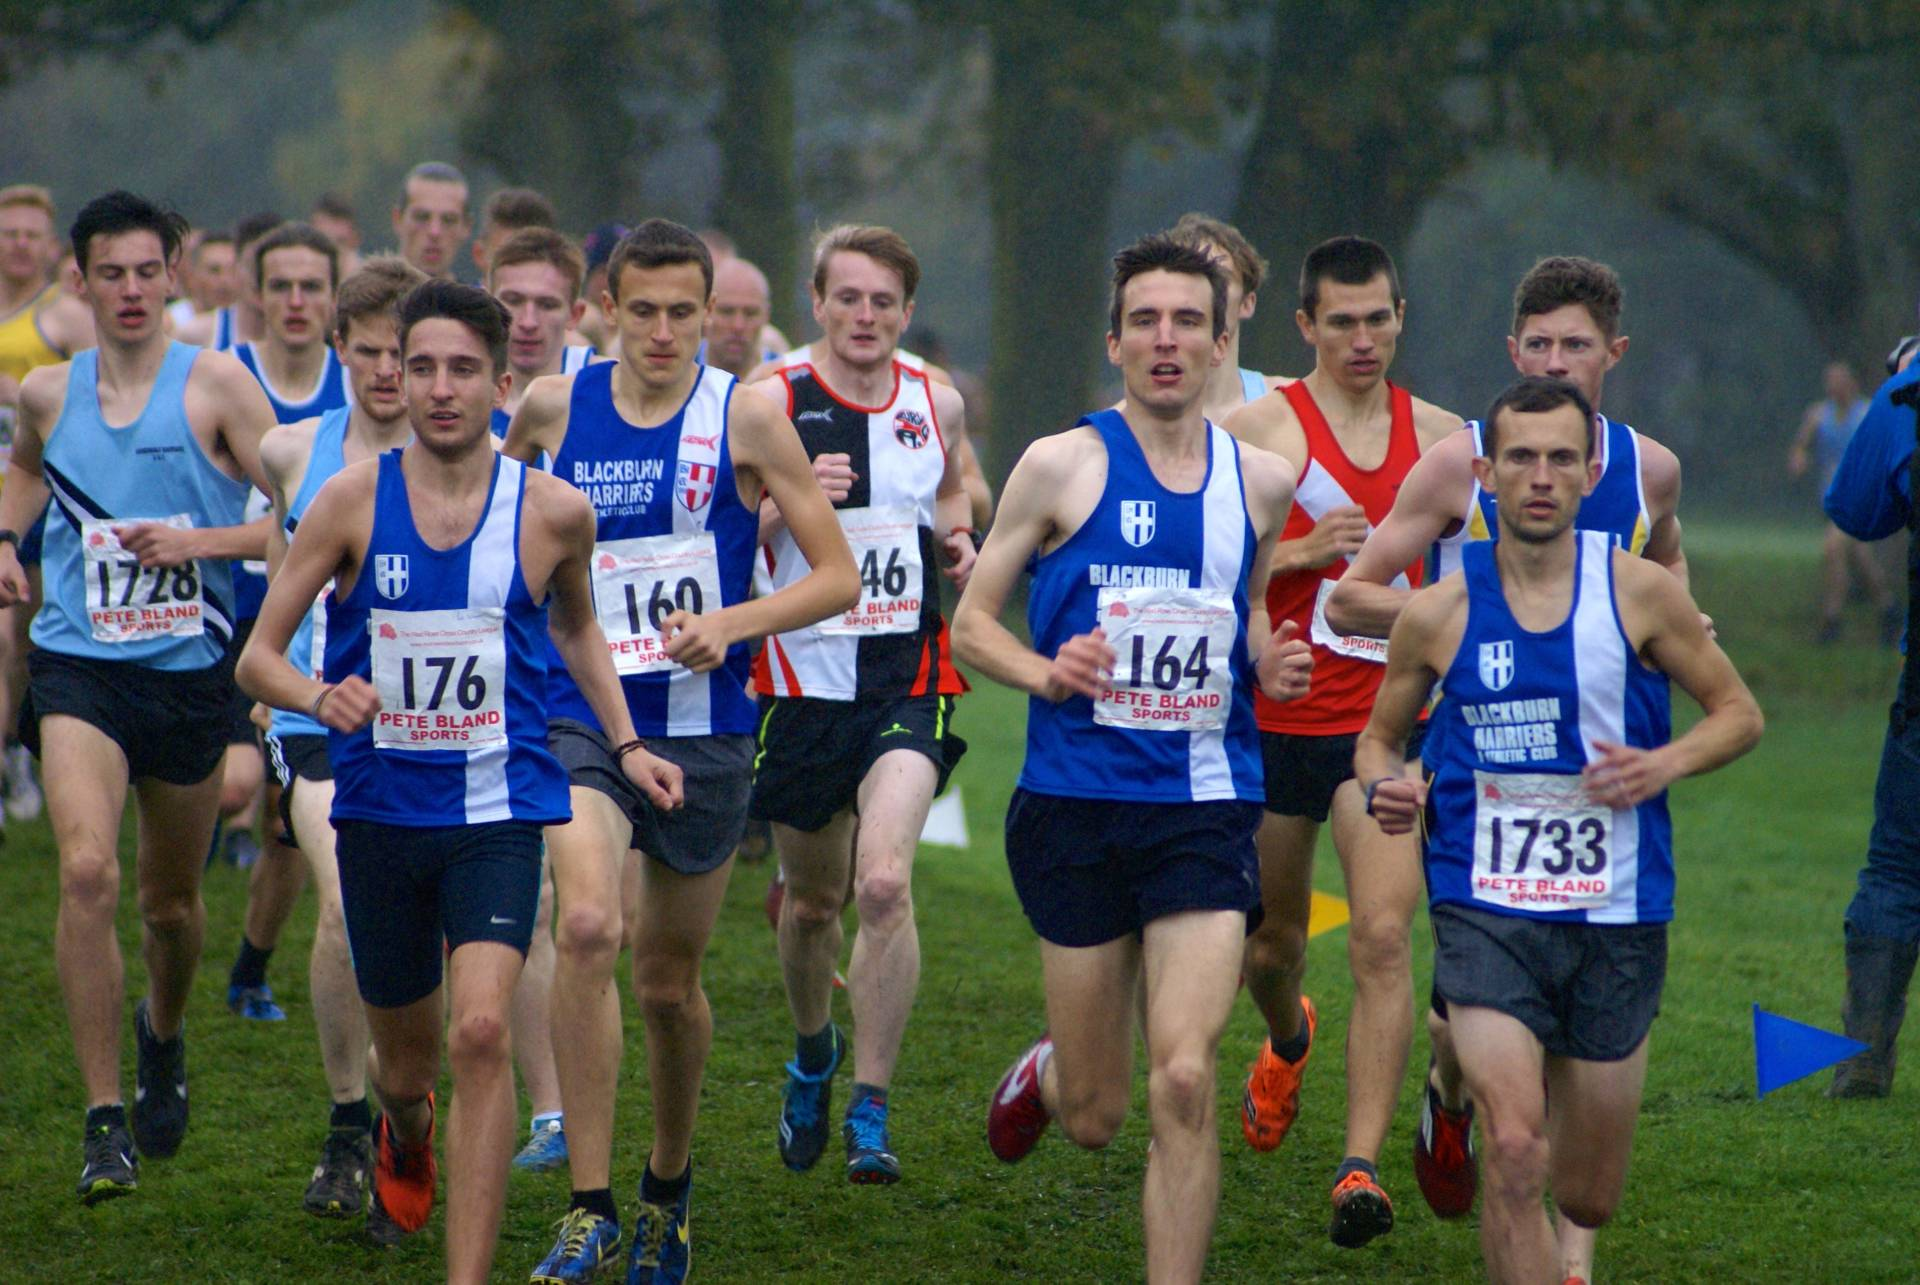 Harriers win again at Witton Park Red Rose League – Accrington 10k & other Results